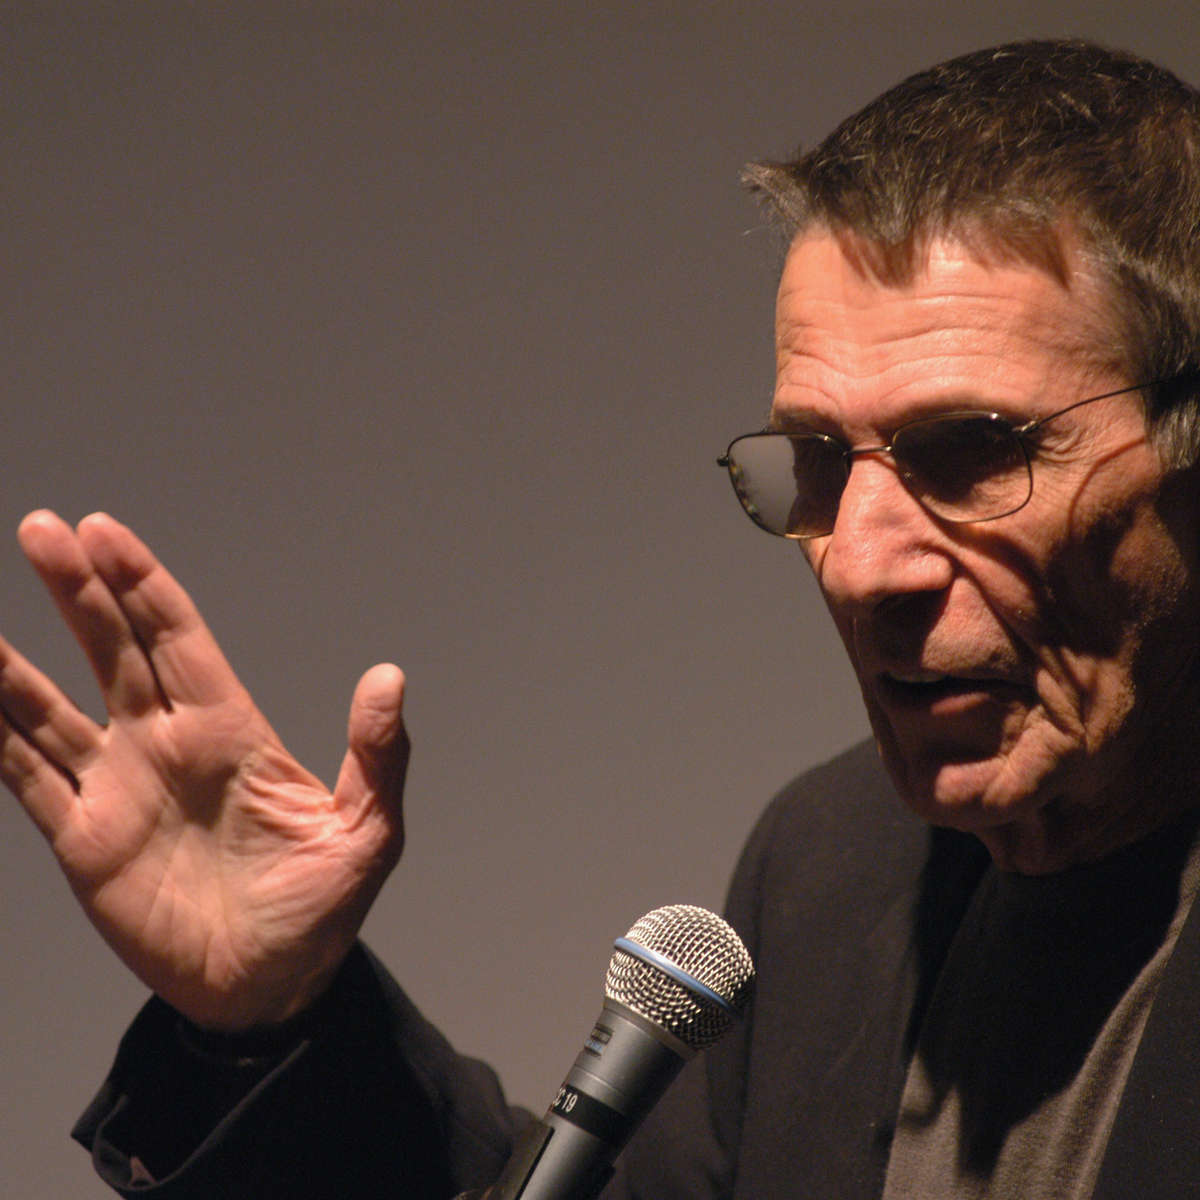 1432439-actor-leonard-nimoy-does-the-vulcan-salute-as-he-presents.jpg